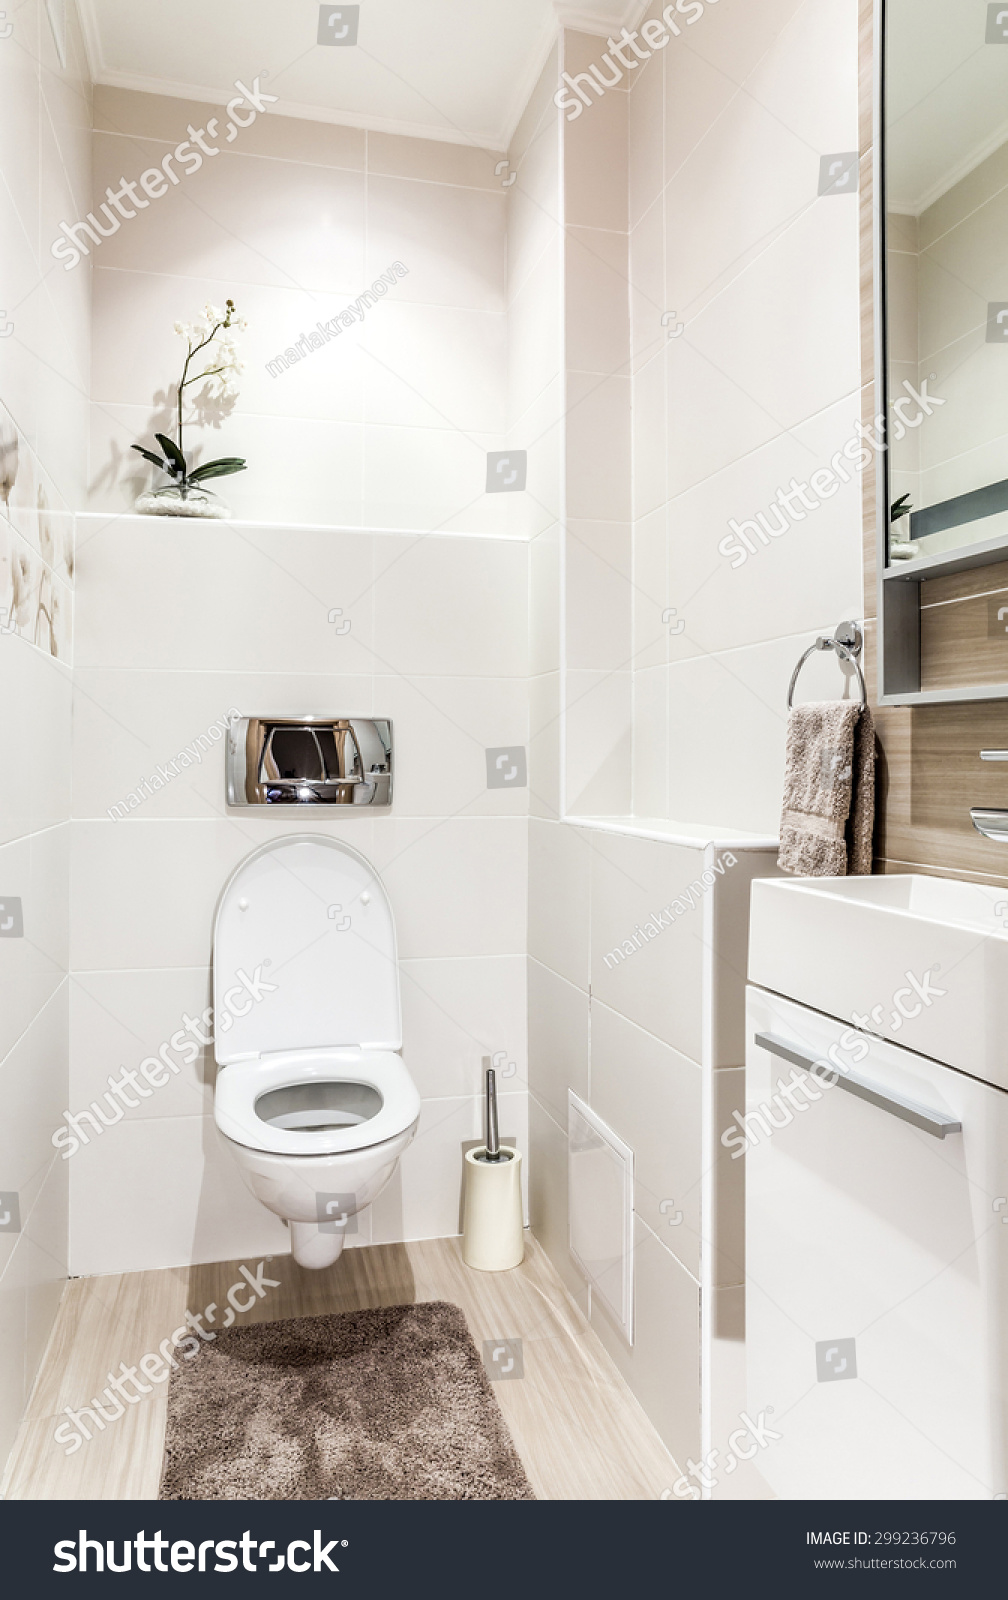 Bathroom toilet modern style stock photo 299236796 for Washroom style